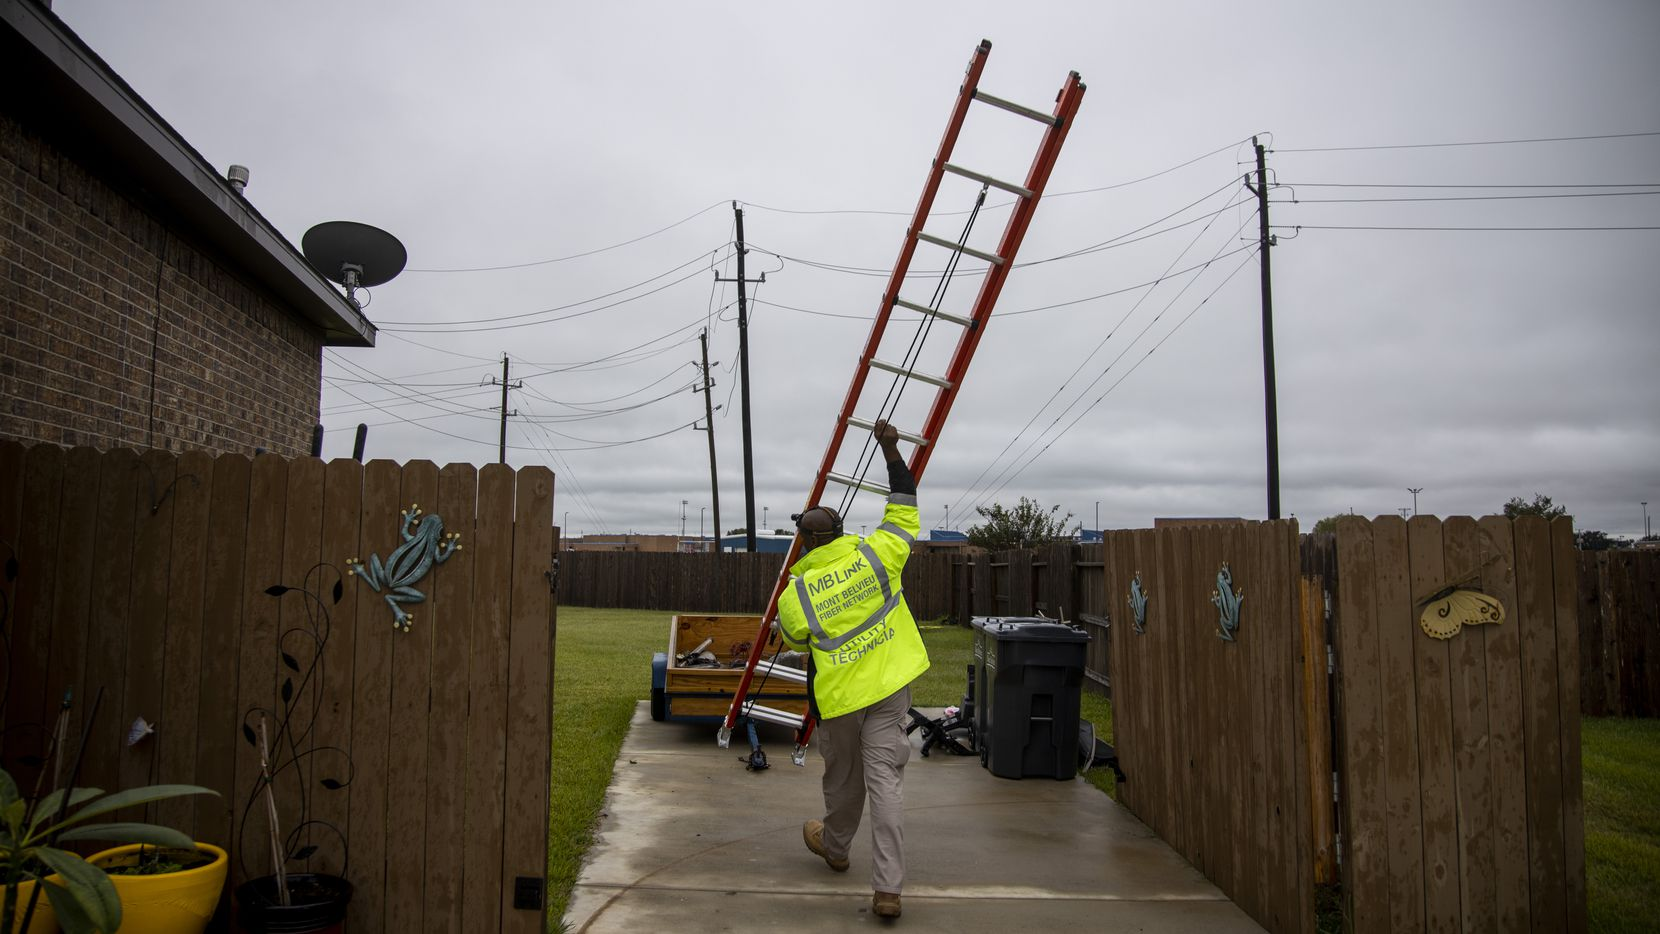 O'Neal Young, broadband installation technician for MB Link, carries a ladder as he works on installing internet for a new customer.  (Shaban Athuman/Staff Photographer)